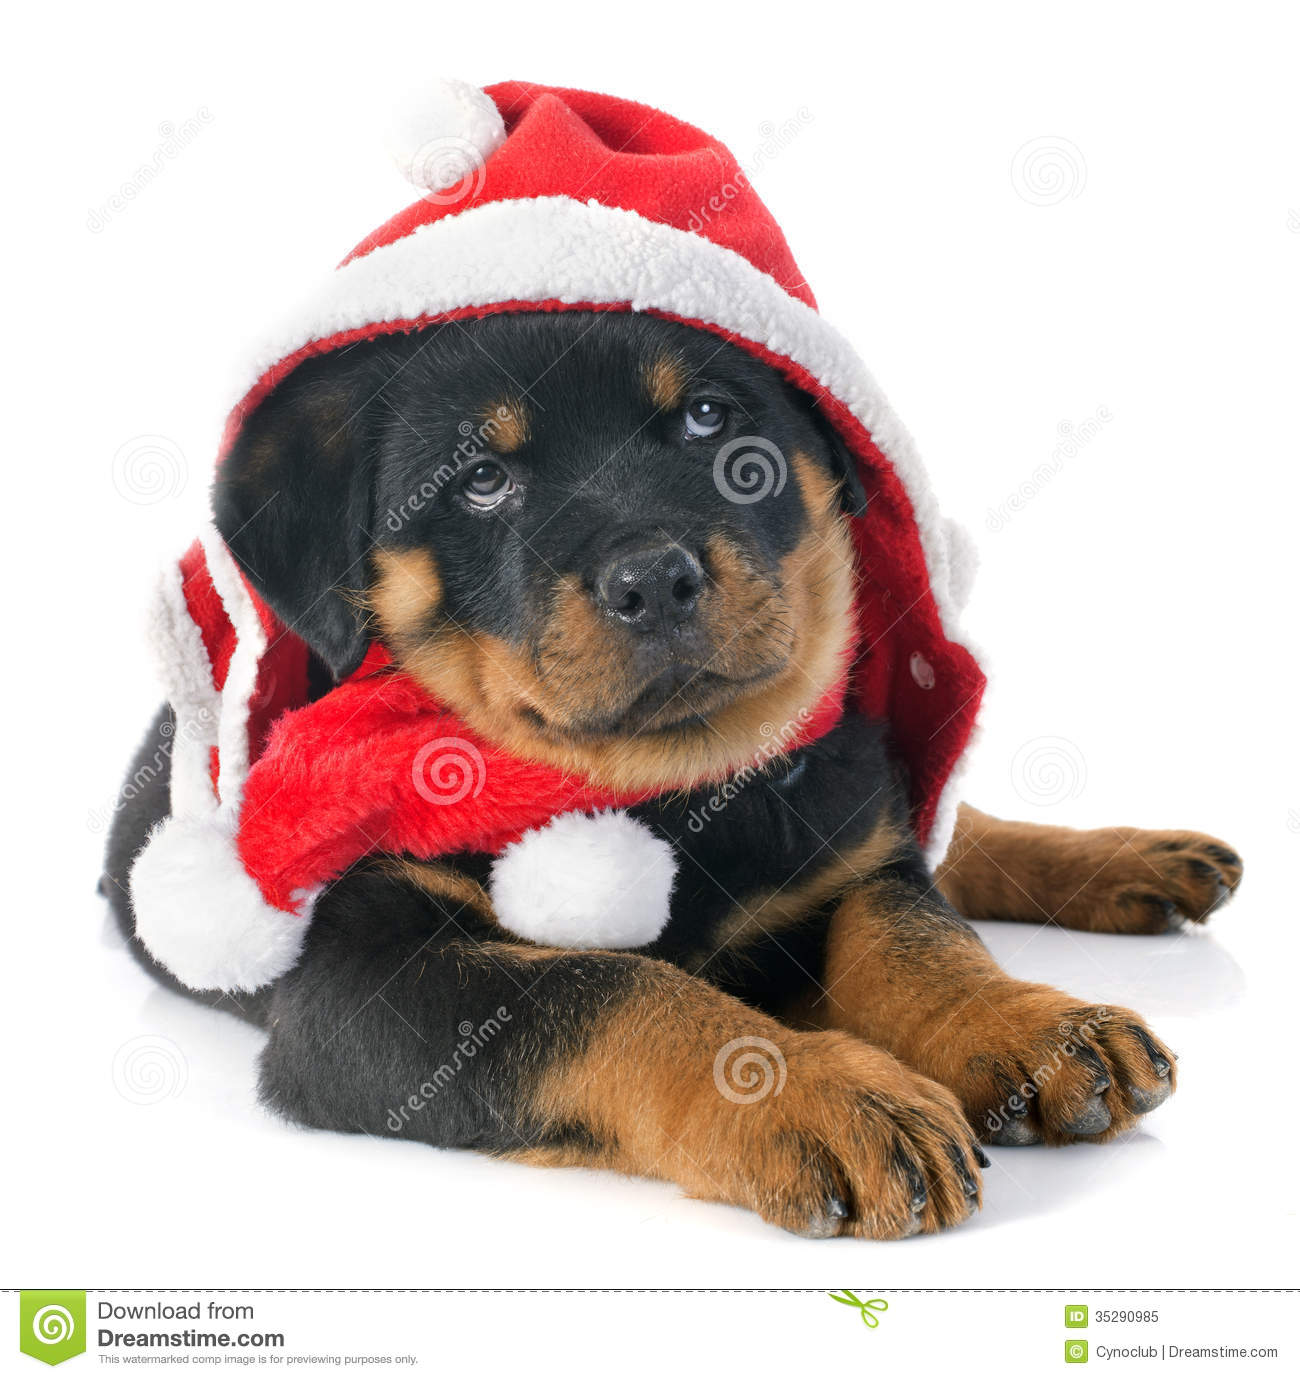 Cute Merry Christmas Wallpaper Dogs Christmas Rottweiler Royalty Free Stock Photo Image